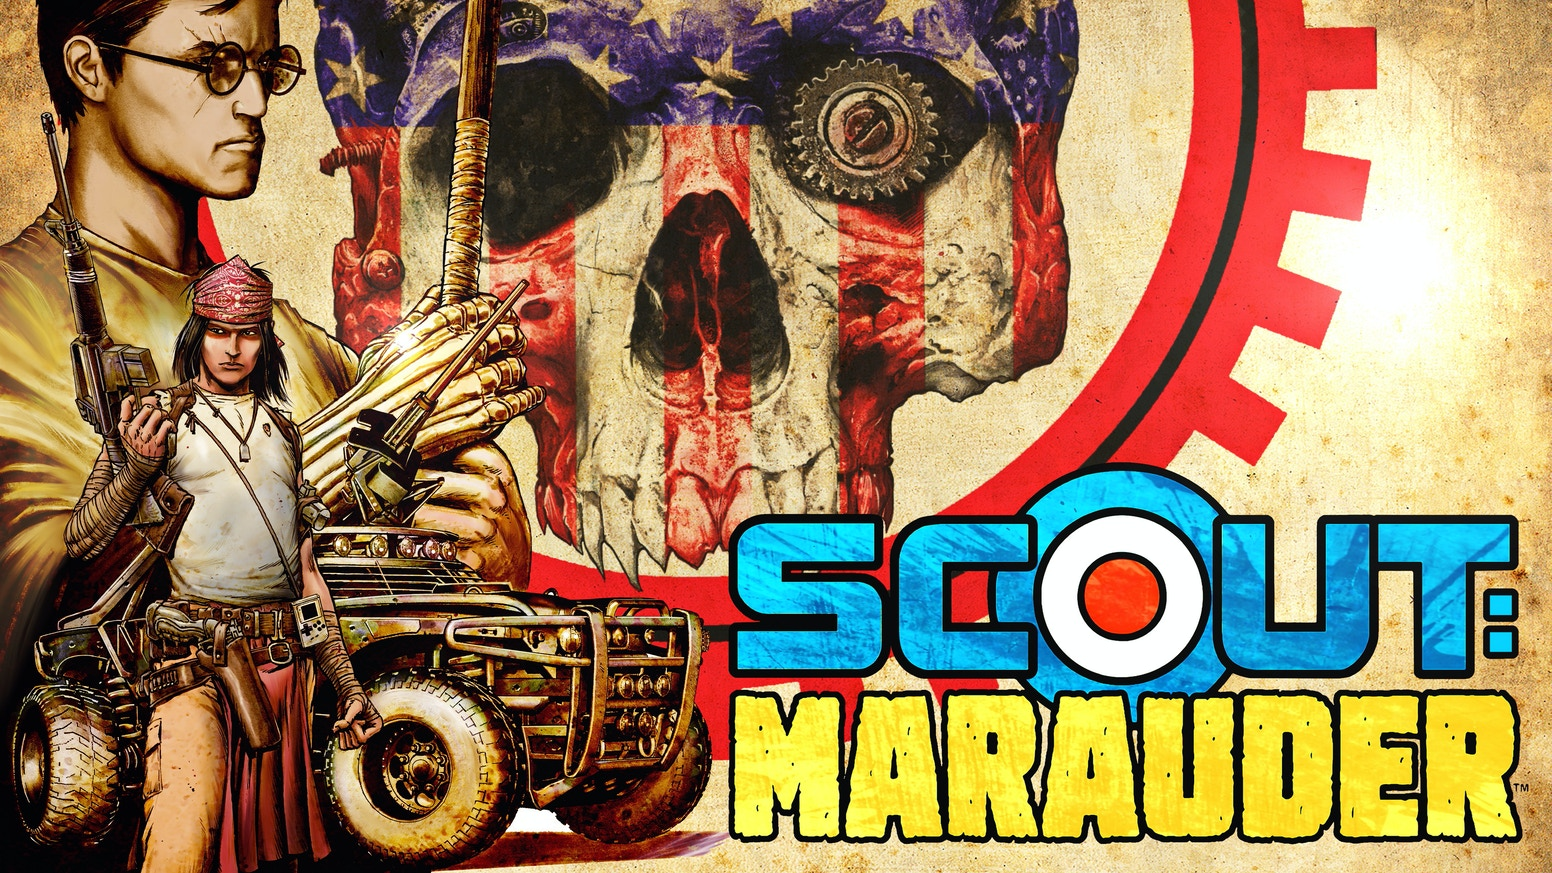 Timothy Truman & co-writer Benjamin Truman present Scout: Marauder, a new graphic novel set in the dystopian future of Timothy's legendary comics series. You can still pre-order the book, add-ons and other items by hitting the button below: